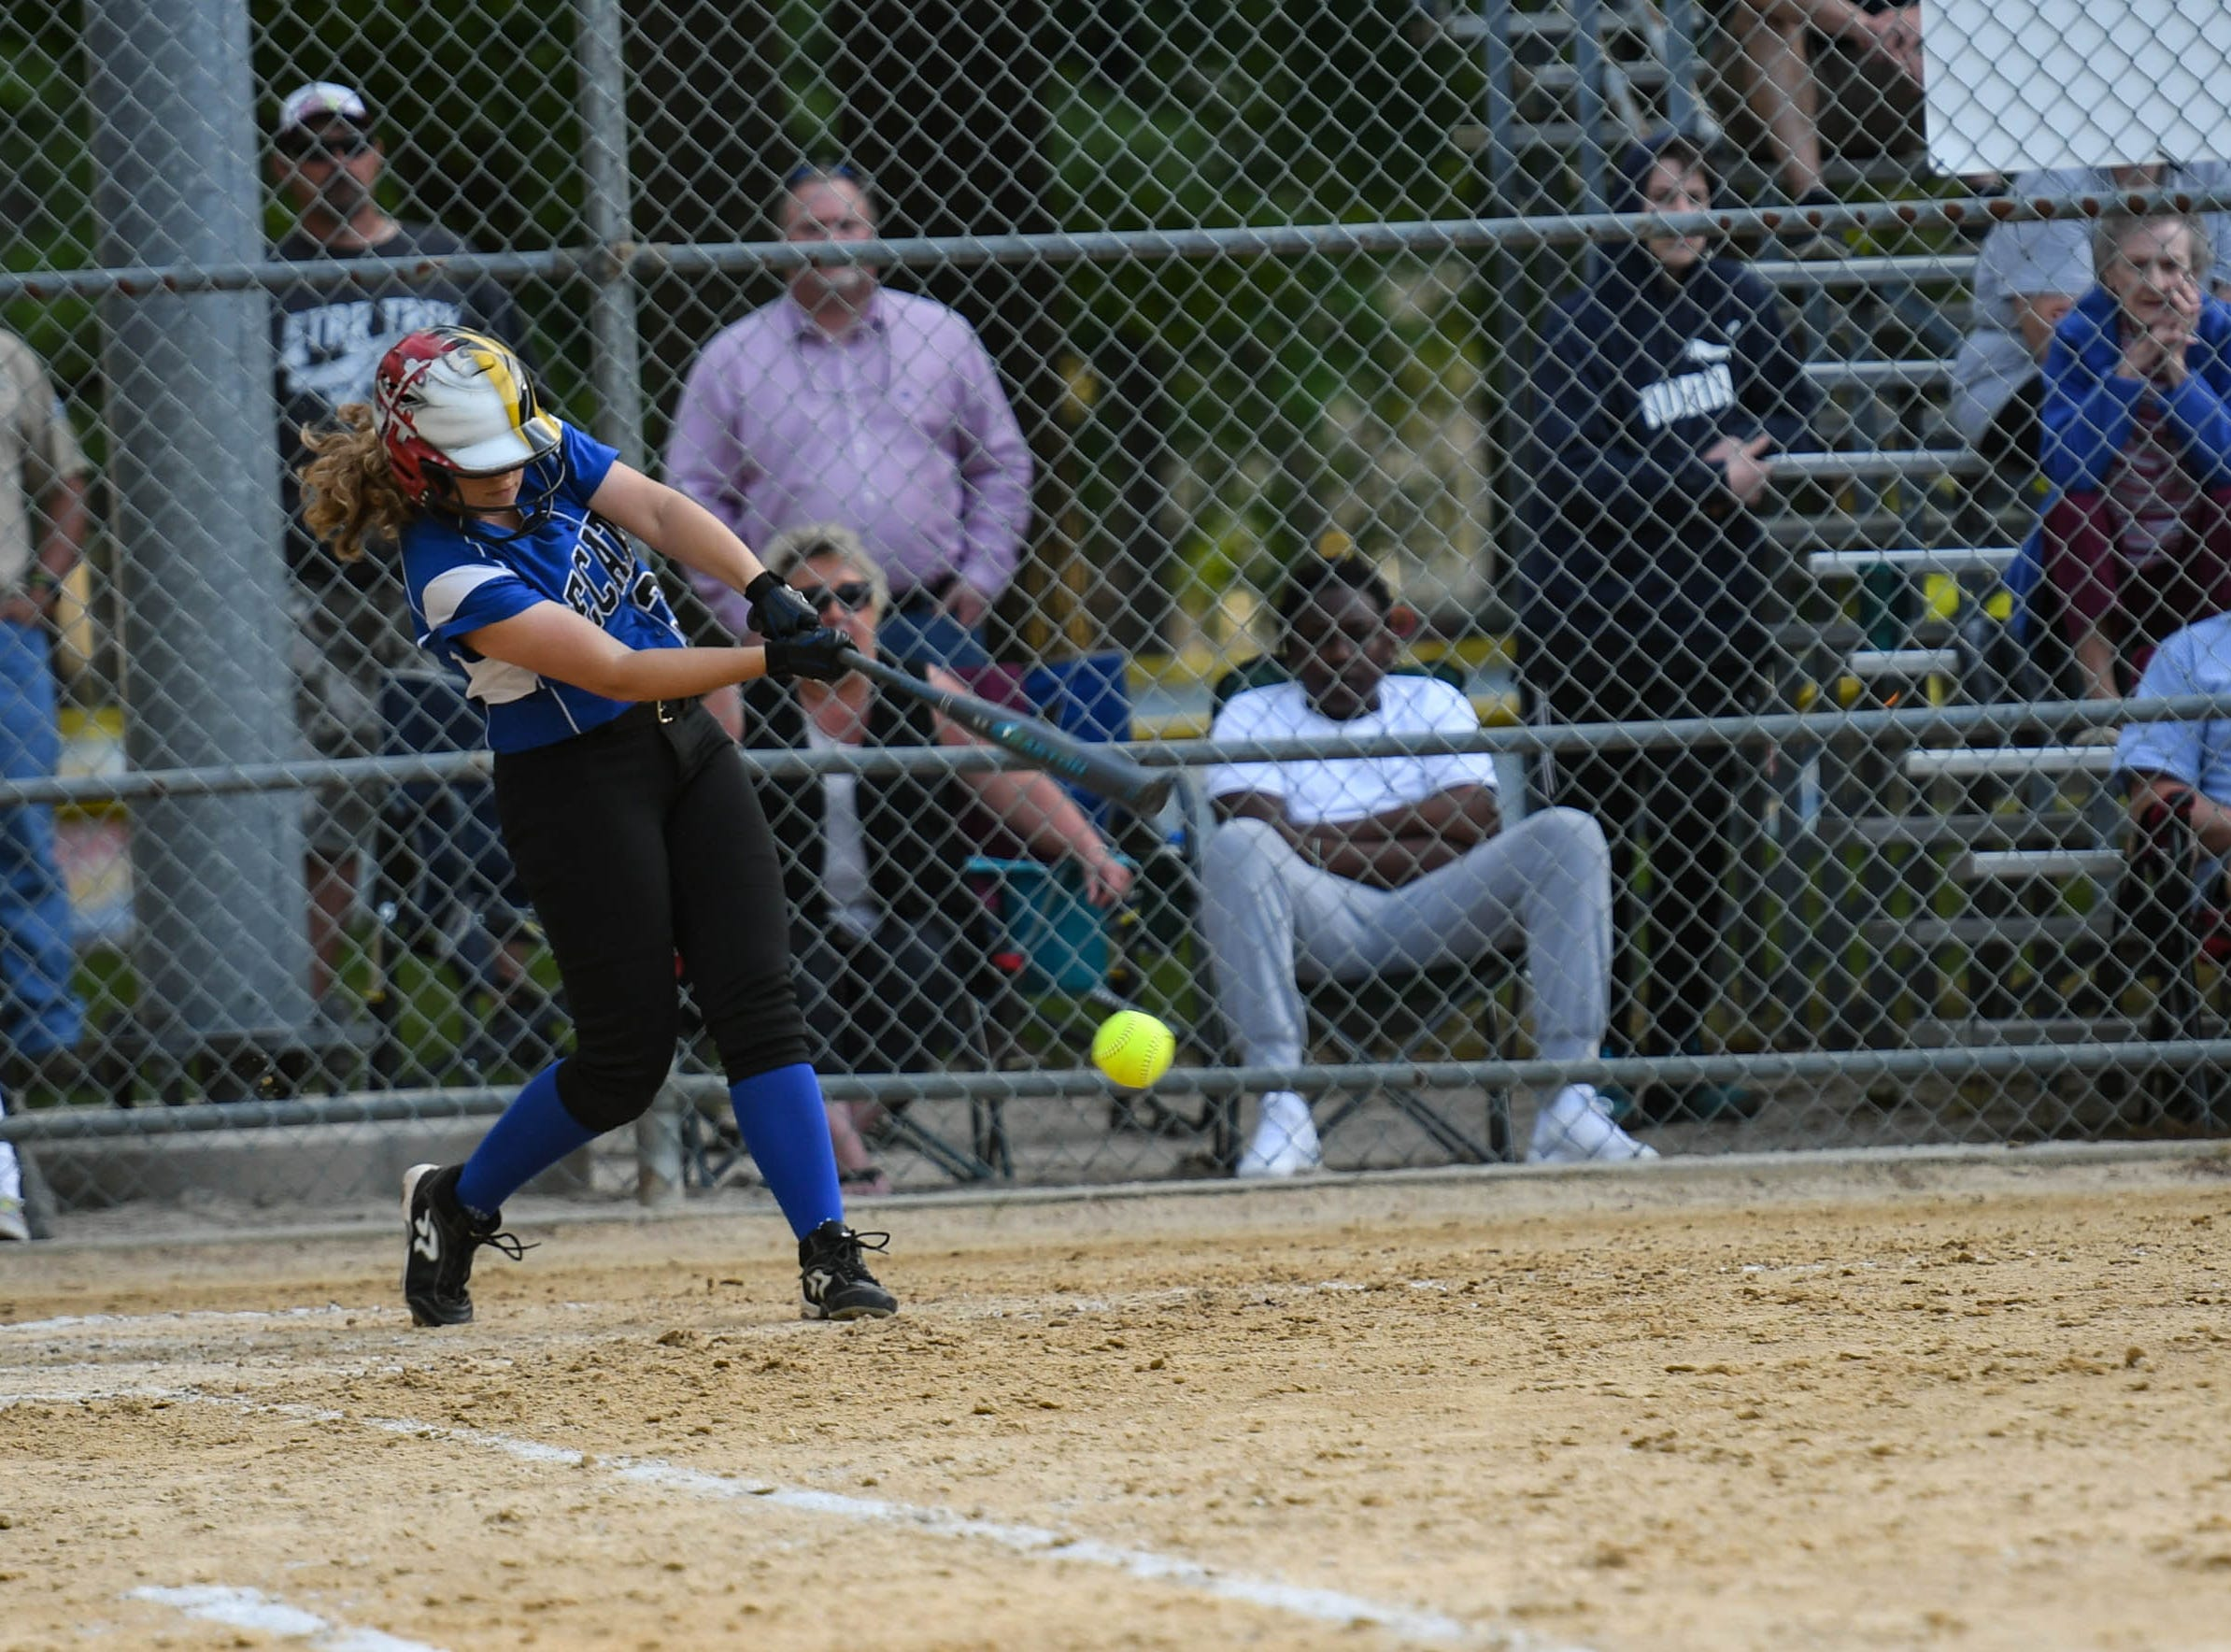 Decatur's Katie Wrench (38) hits against Colonel Richardson in the Bayside Softball Championship game on Wednesday, May 8, 2019. Decatur prevailed with a score of 4 to 1.